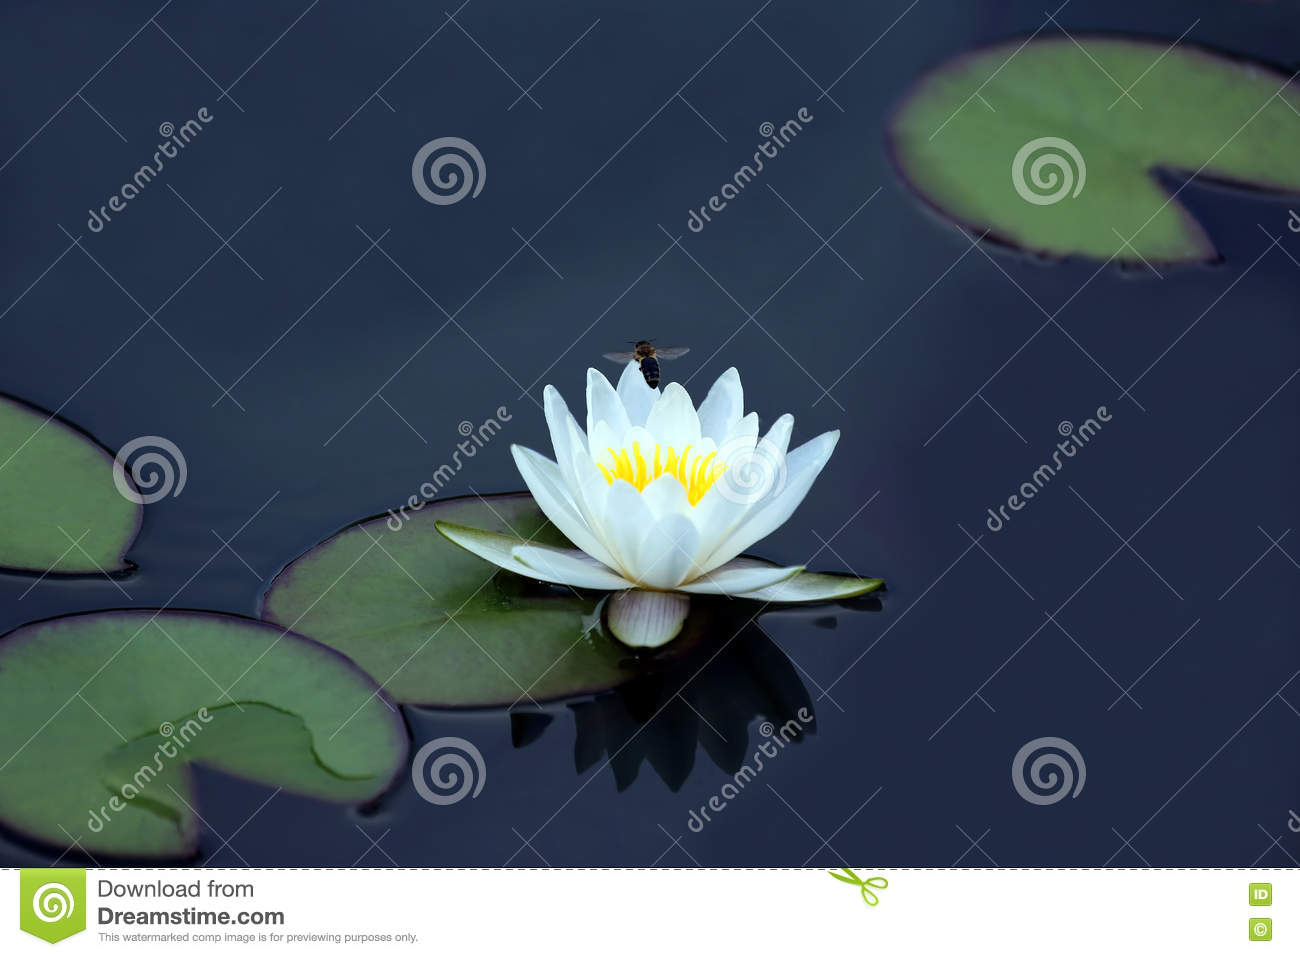 Bee pollinating a white flower of lotus on the water